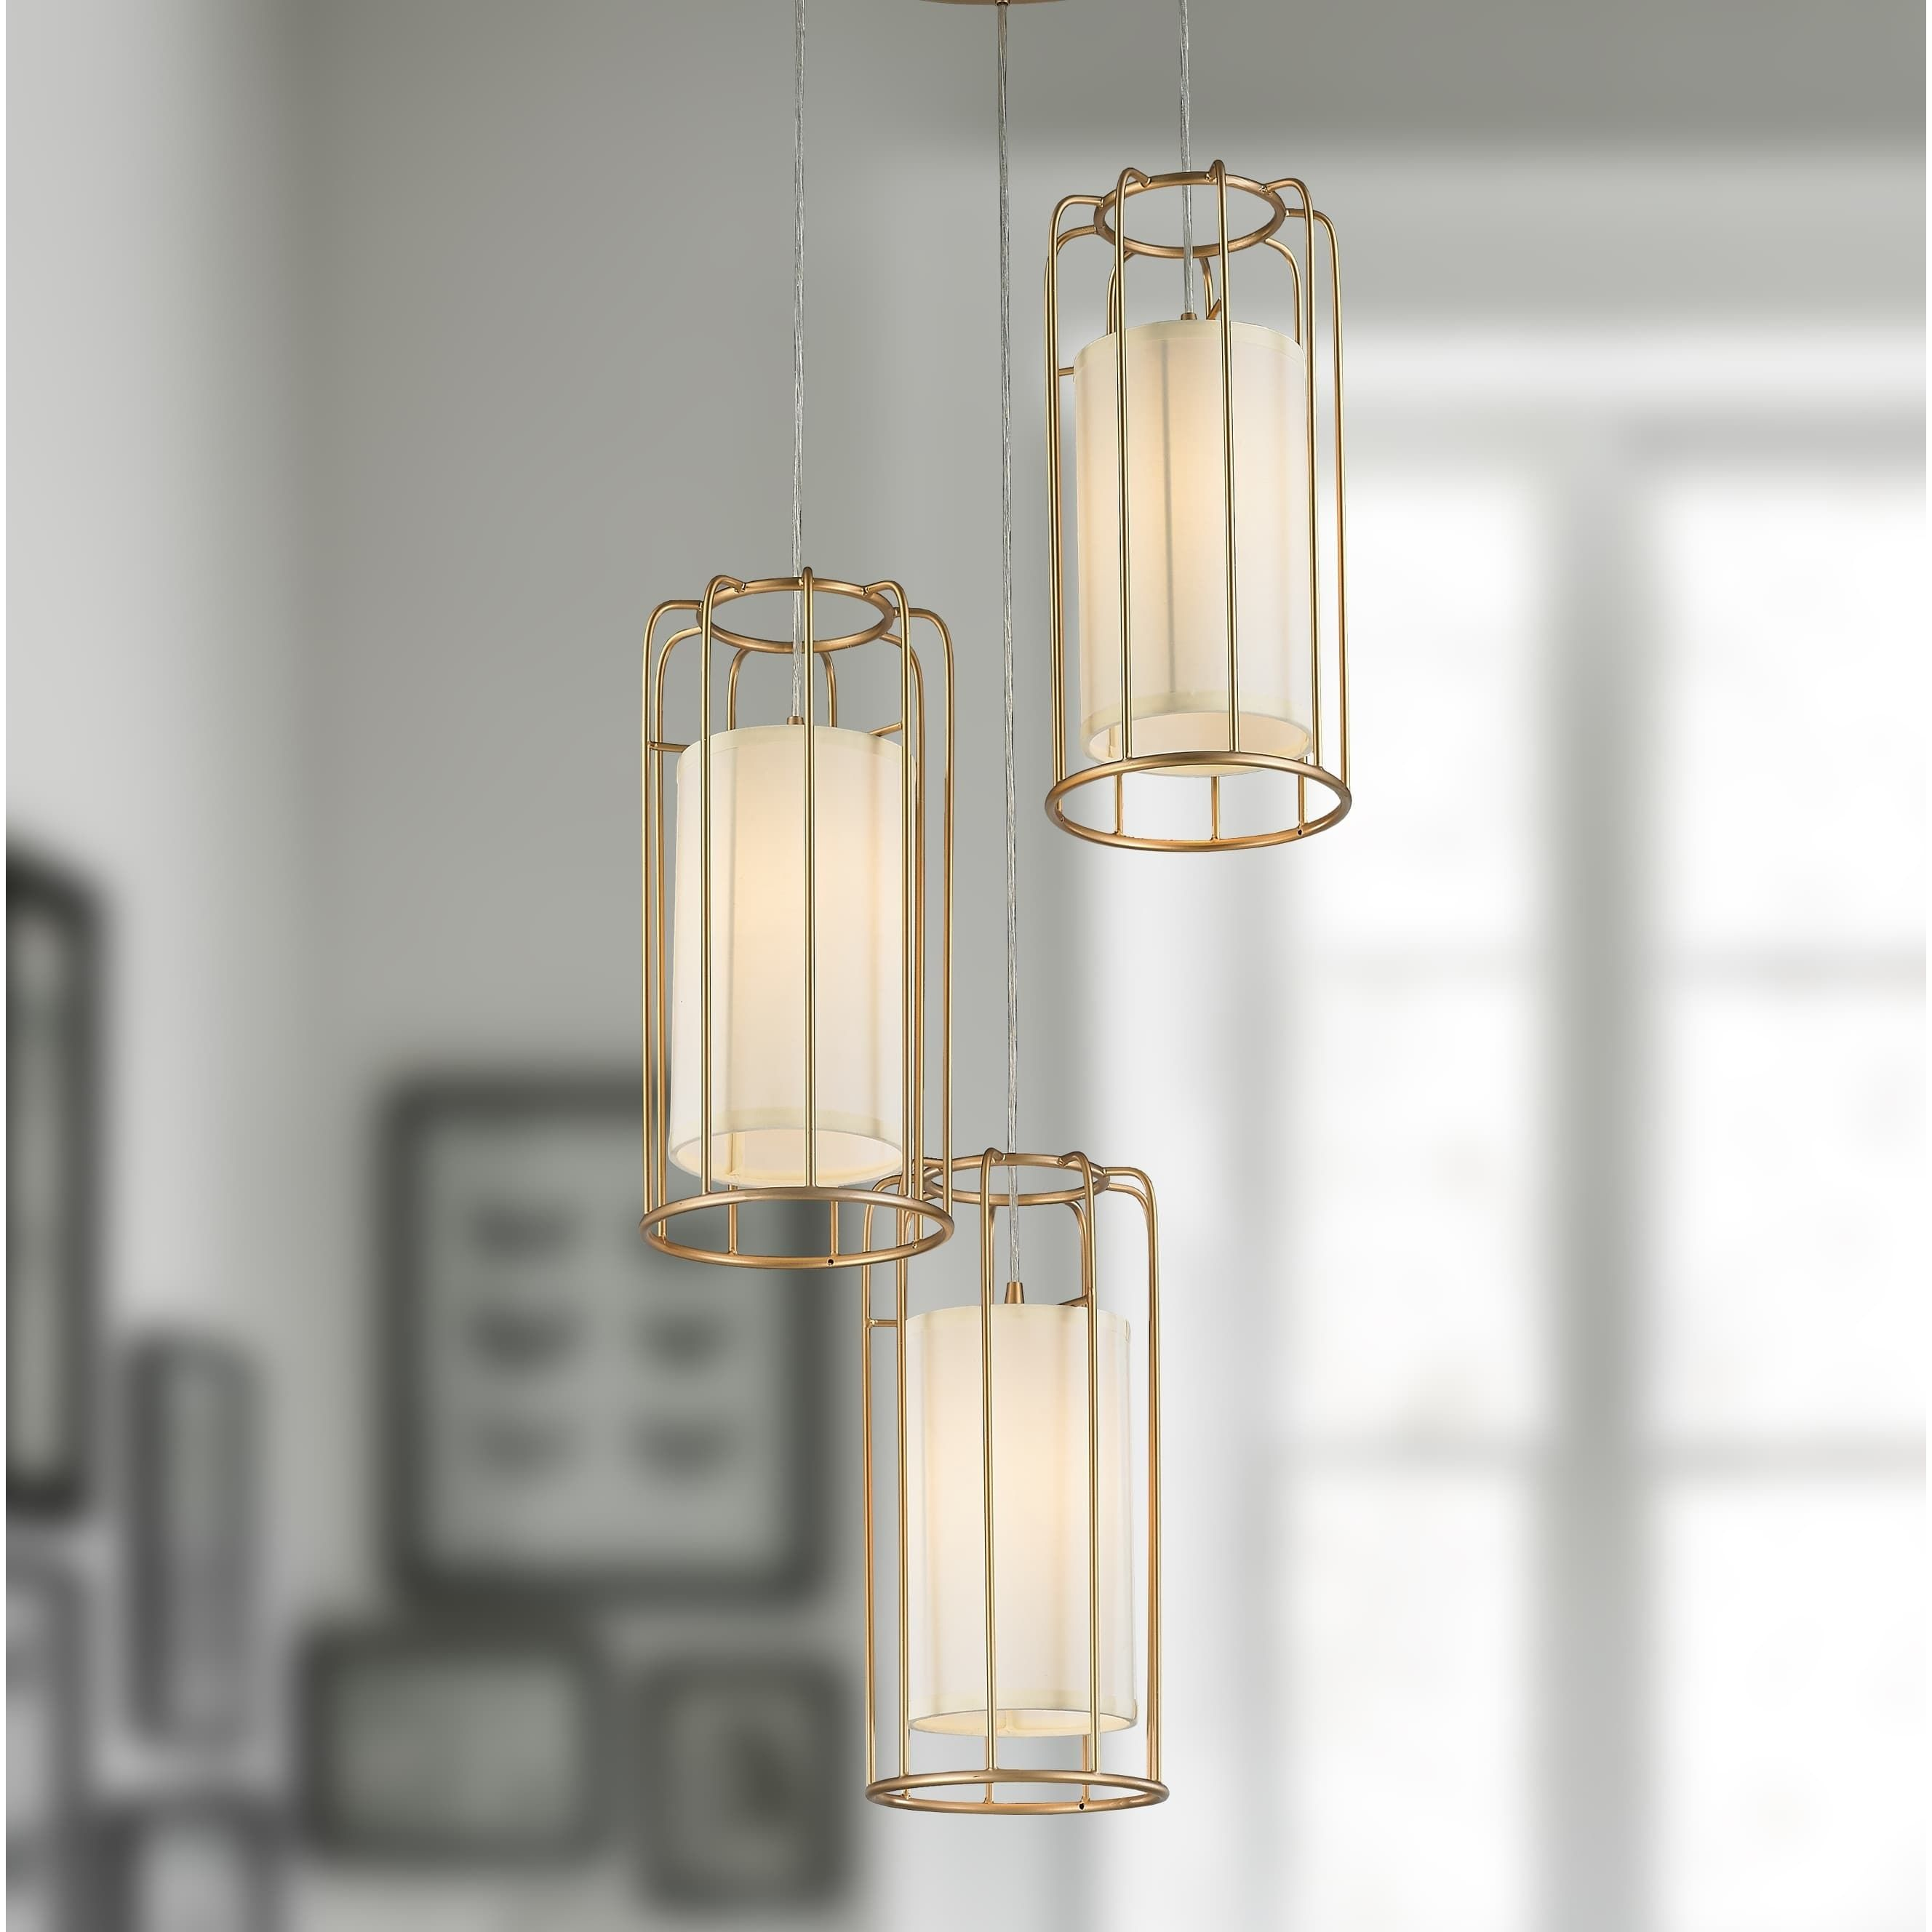 Brilliance Lighting And Chandeliers Cage Collection 3 Light